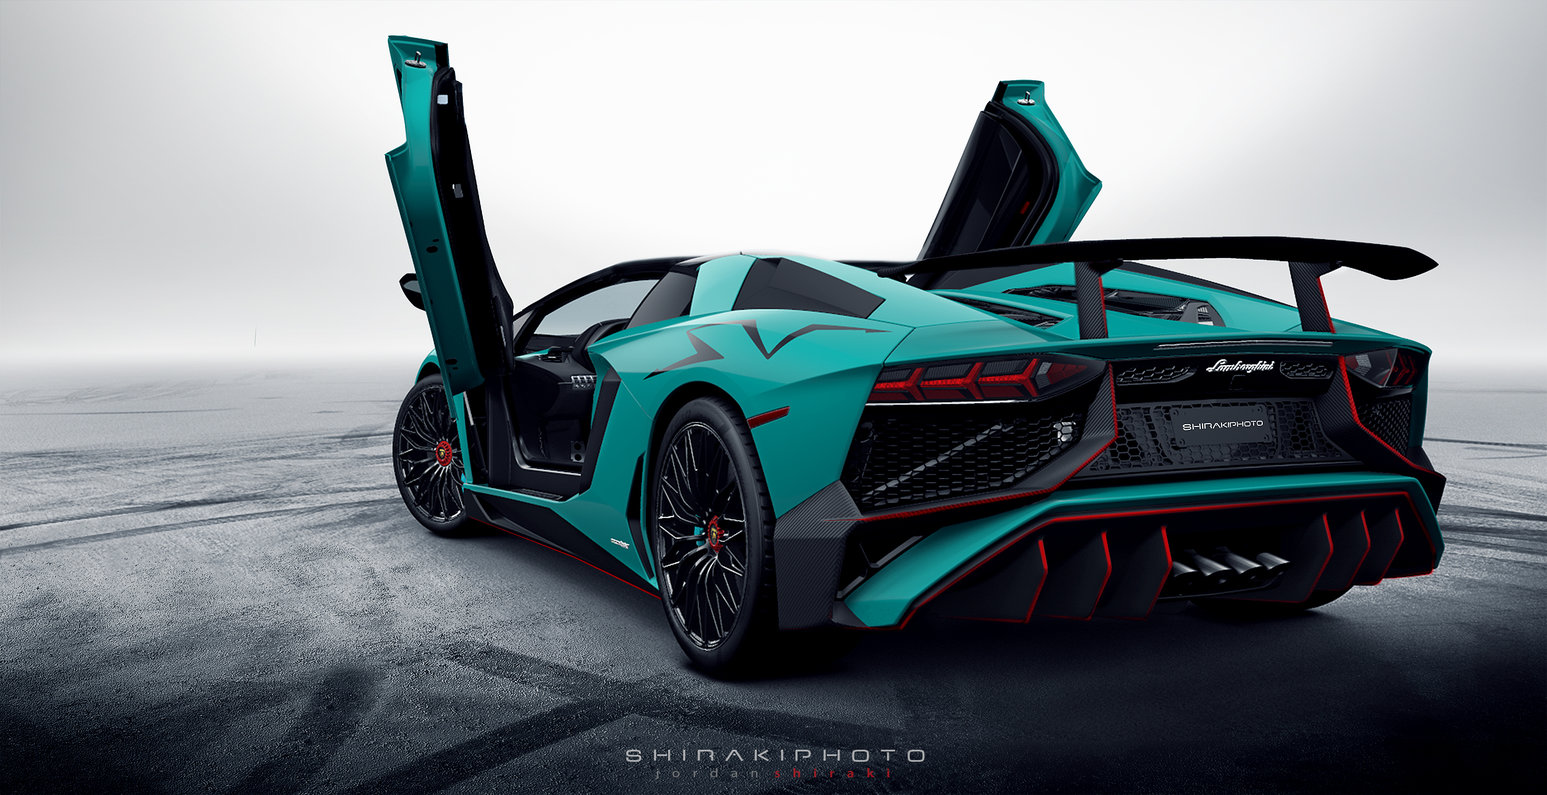 Green Lamborghini Doors Up 580.83 Kb